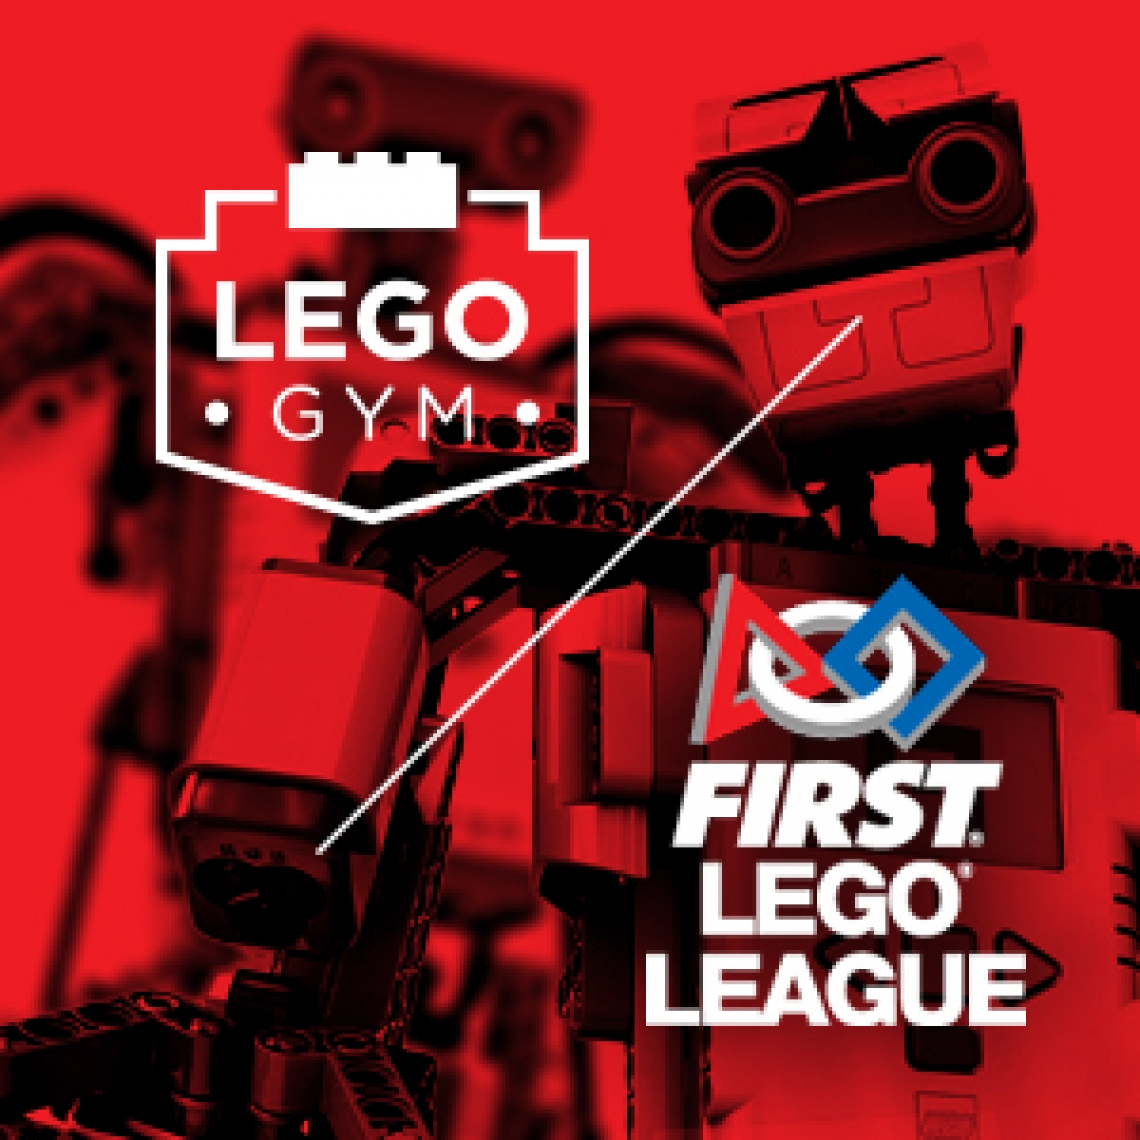 Pure Innovation by LEGO GYM at FLL